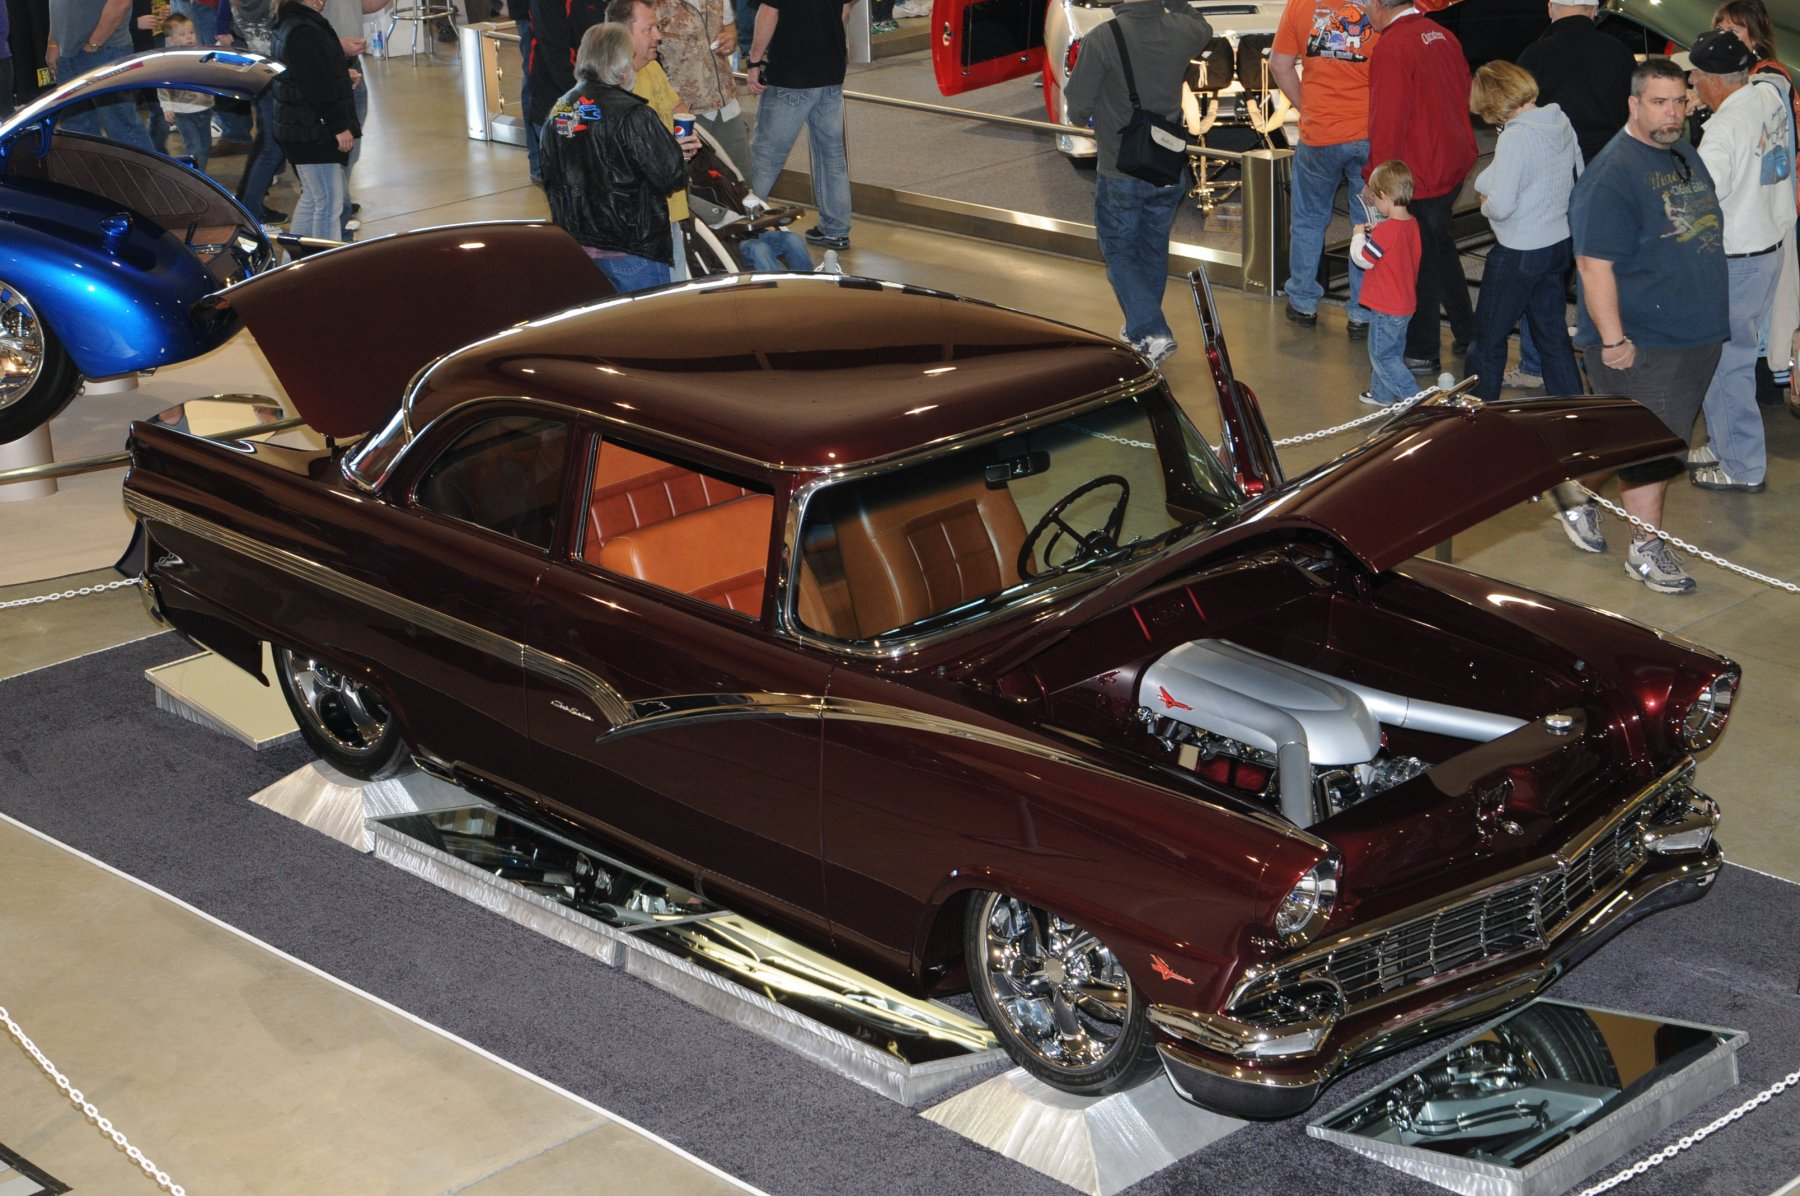 Halo Chevy Coupe Sweeps Goldmark Title At Boise Roadster Show - Boise car show father's day